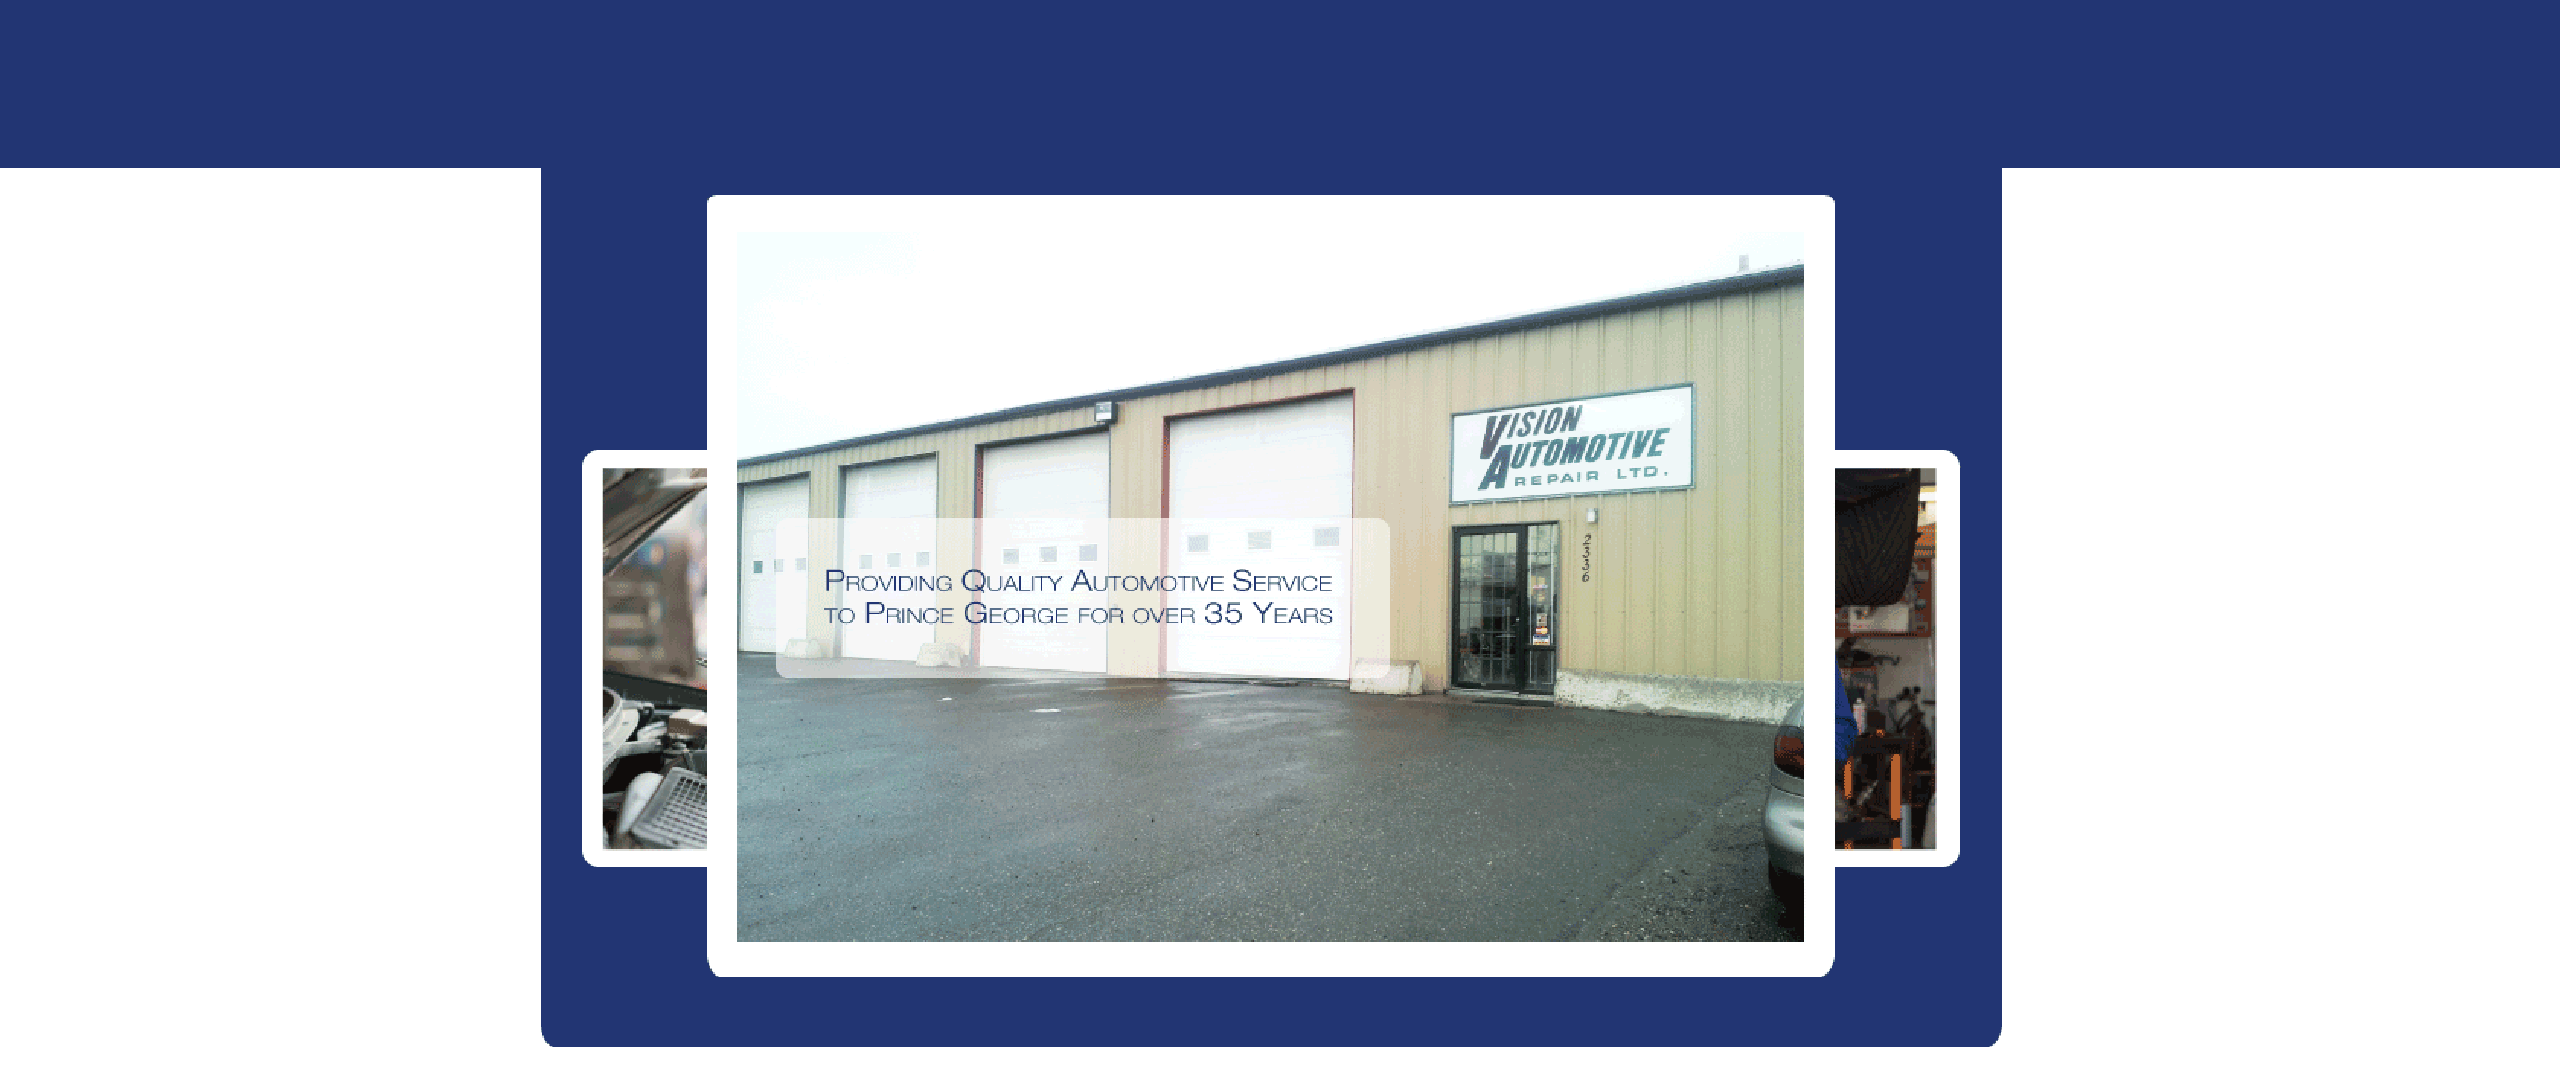 Providing Quality Automotive Service to Prince George for over 35 Years